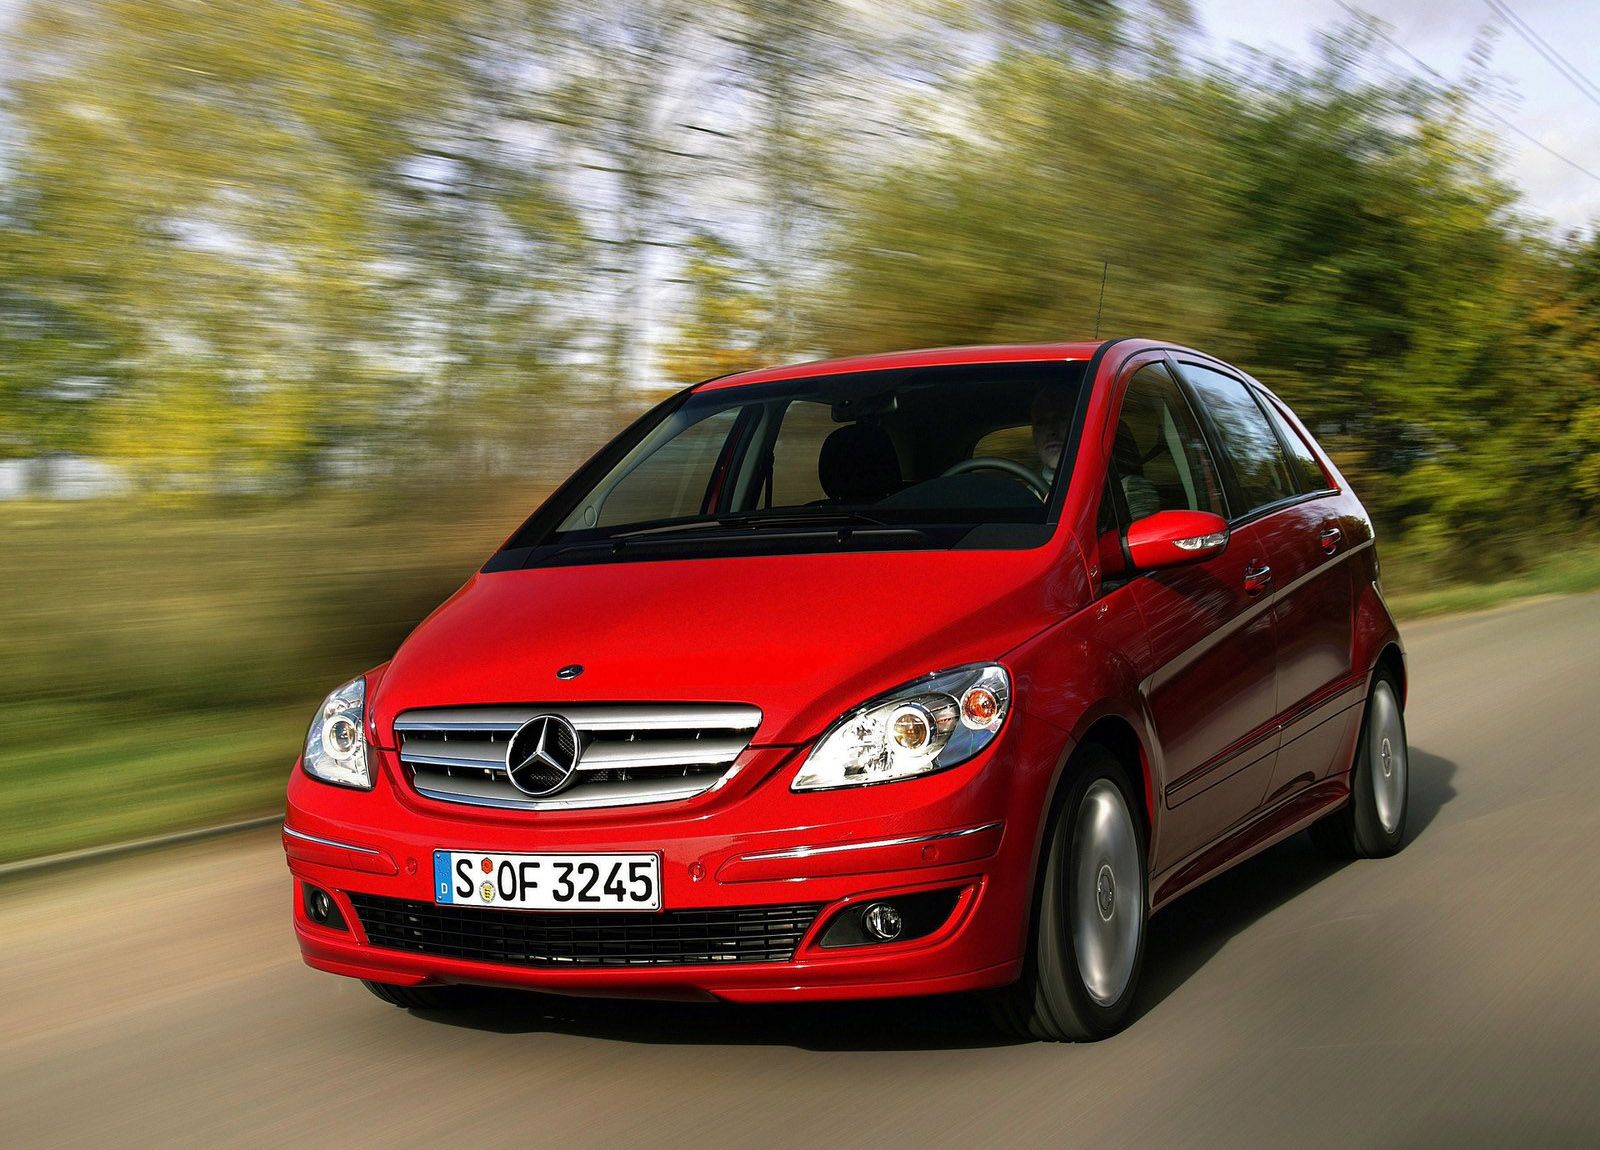 Mercedes-Benz B200 Turbo photo #1